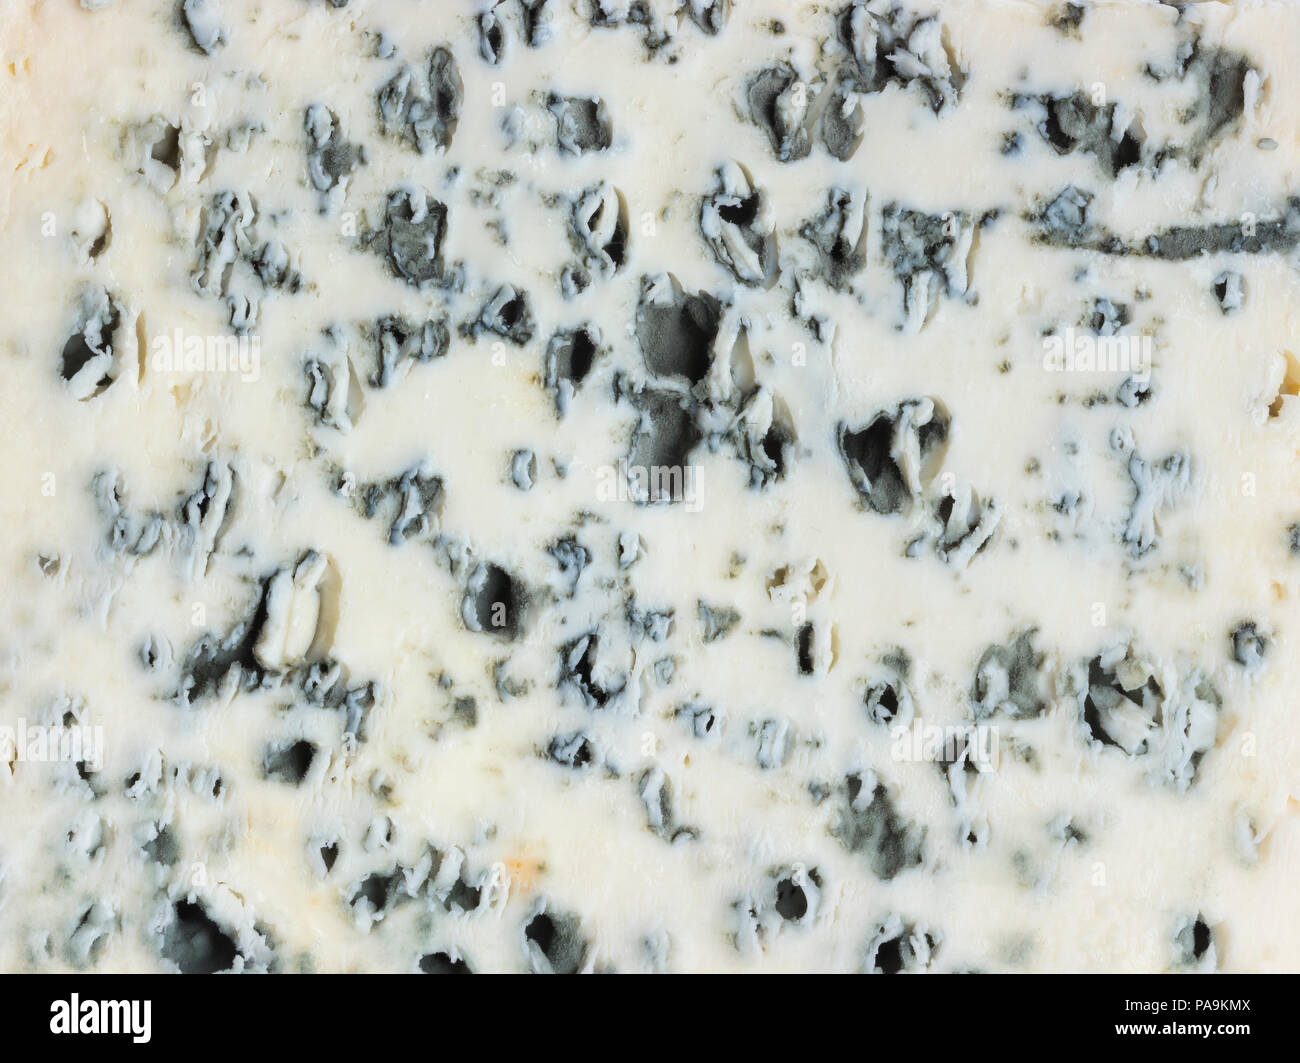 Blue cheese texture or background. Close up. - Stock Image